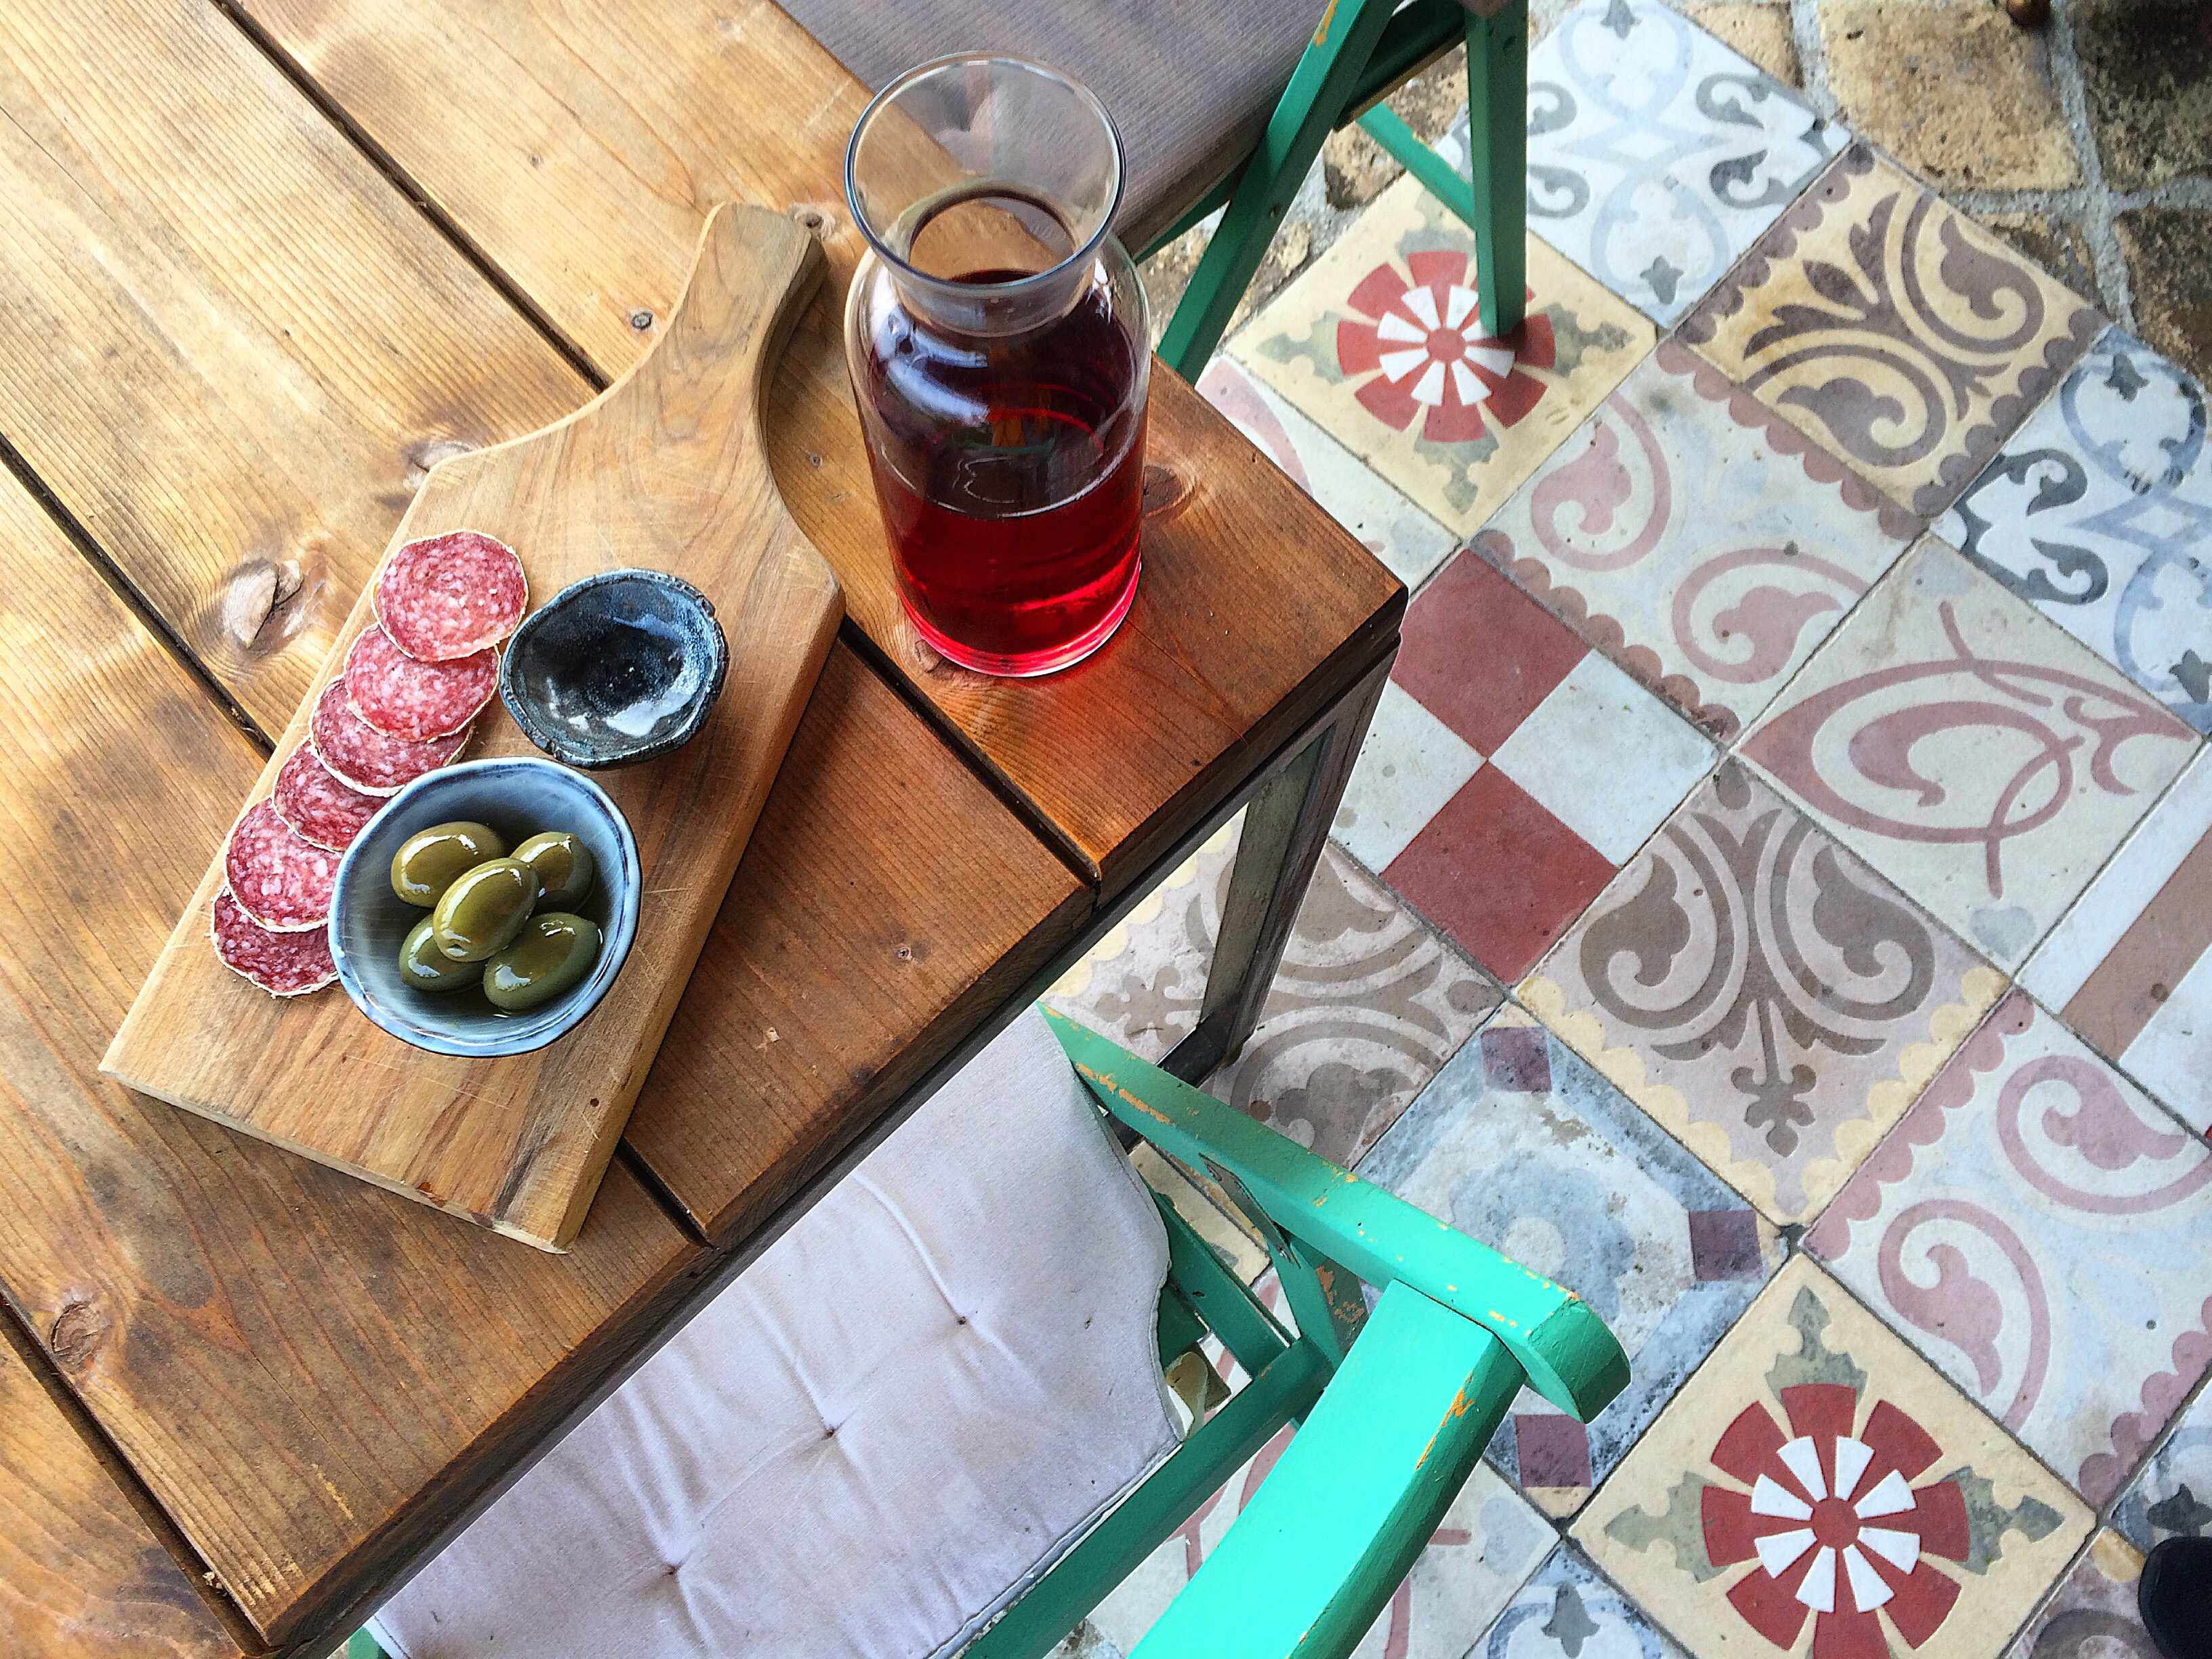 A carafe of rose wine with a plate of charcuterie with a tiled floor beneath